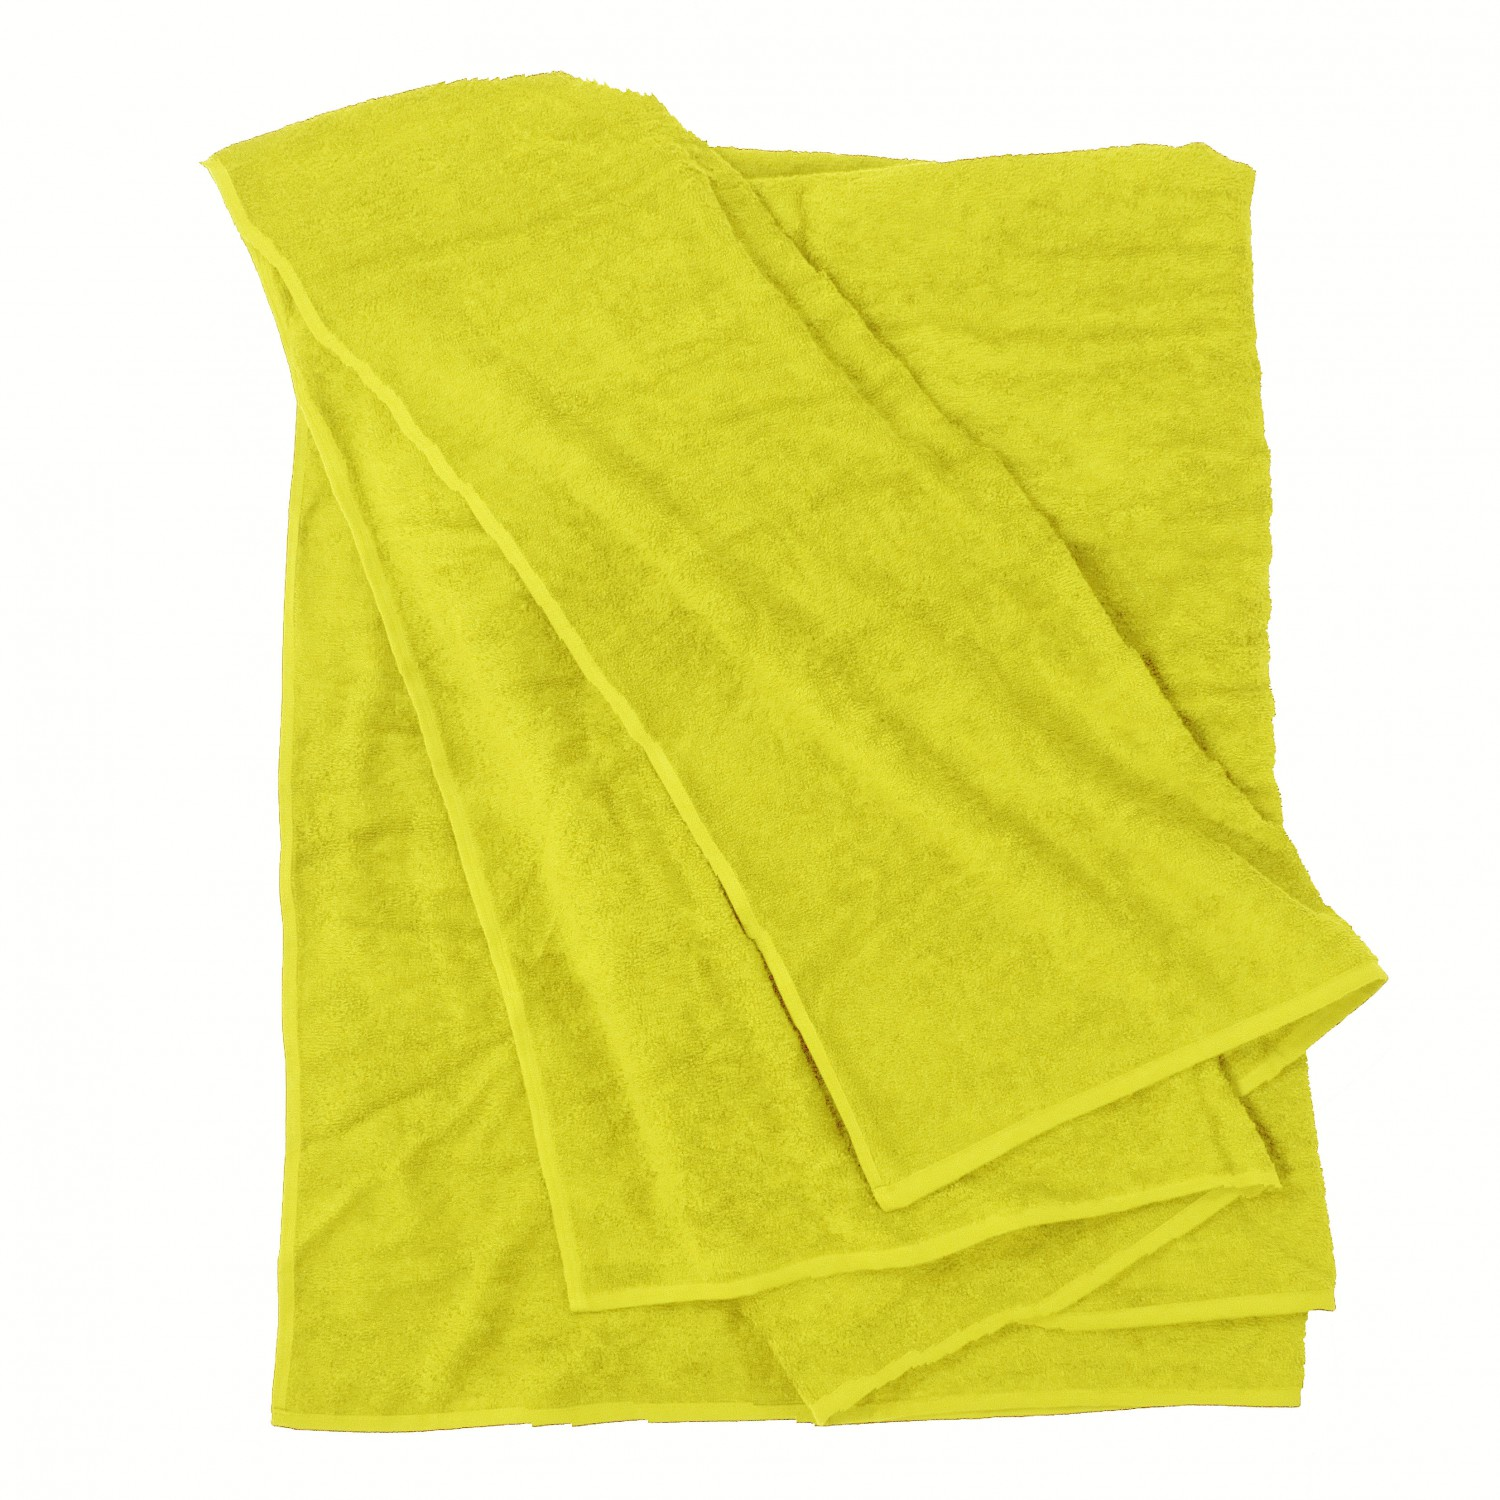 Detail Image to Bath towel in yellow by Kapart in large sizes 100x220 cm and 155x220 cm